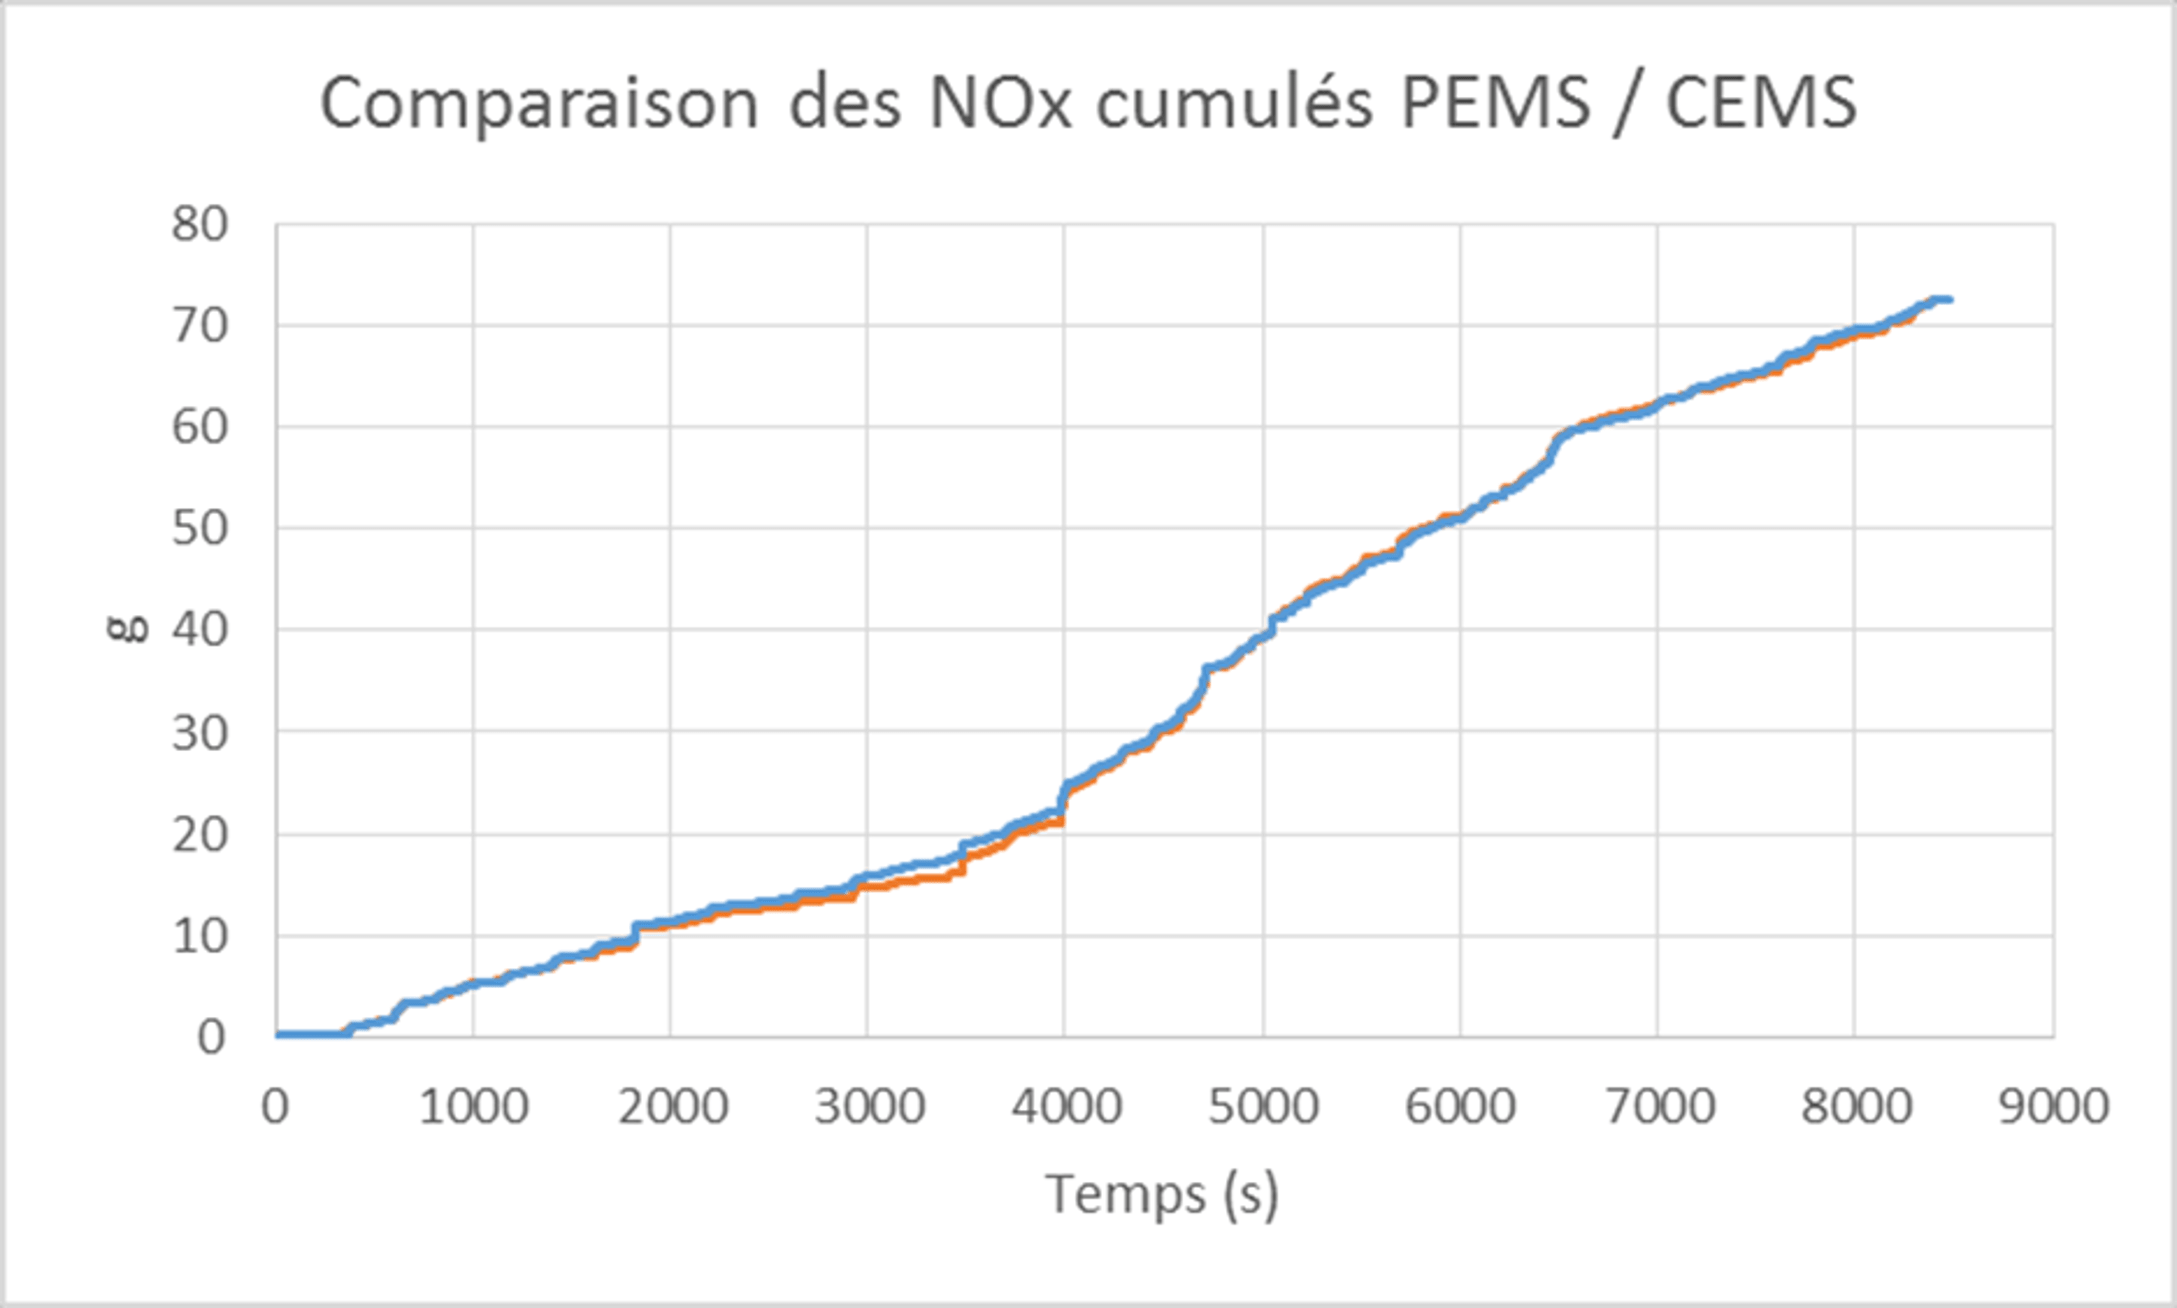 PEMS (Portable Emissions Measurement System)